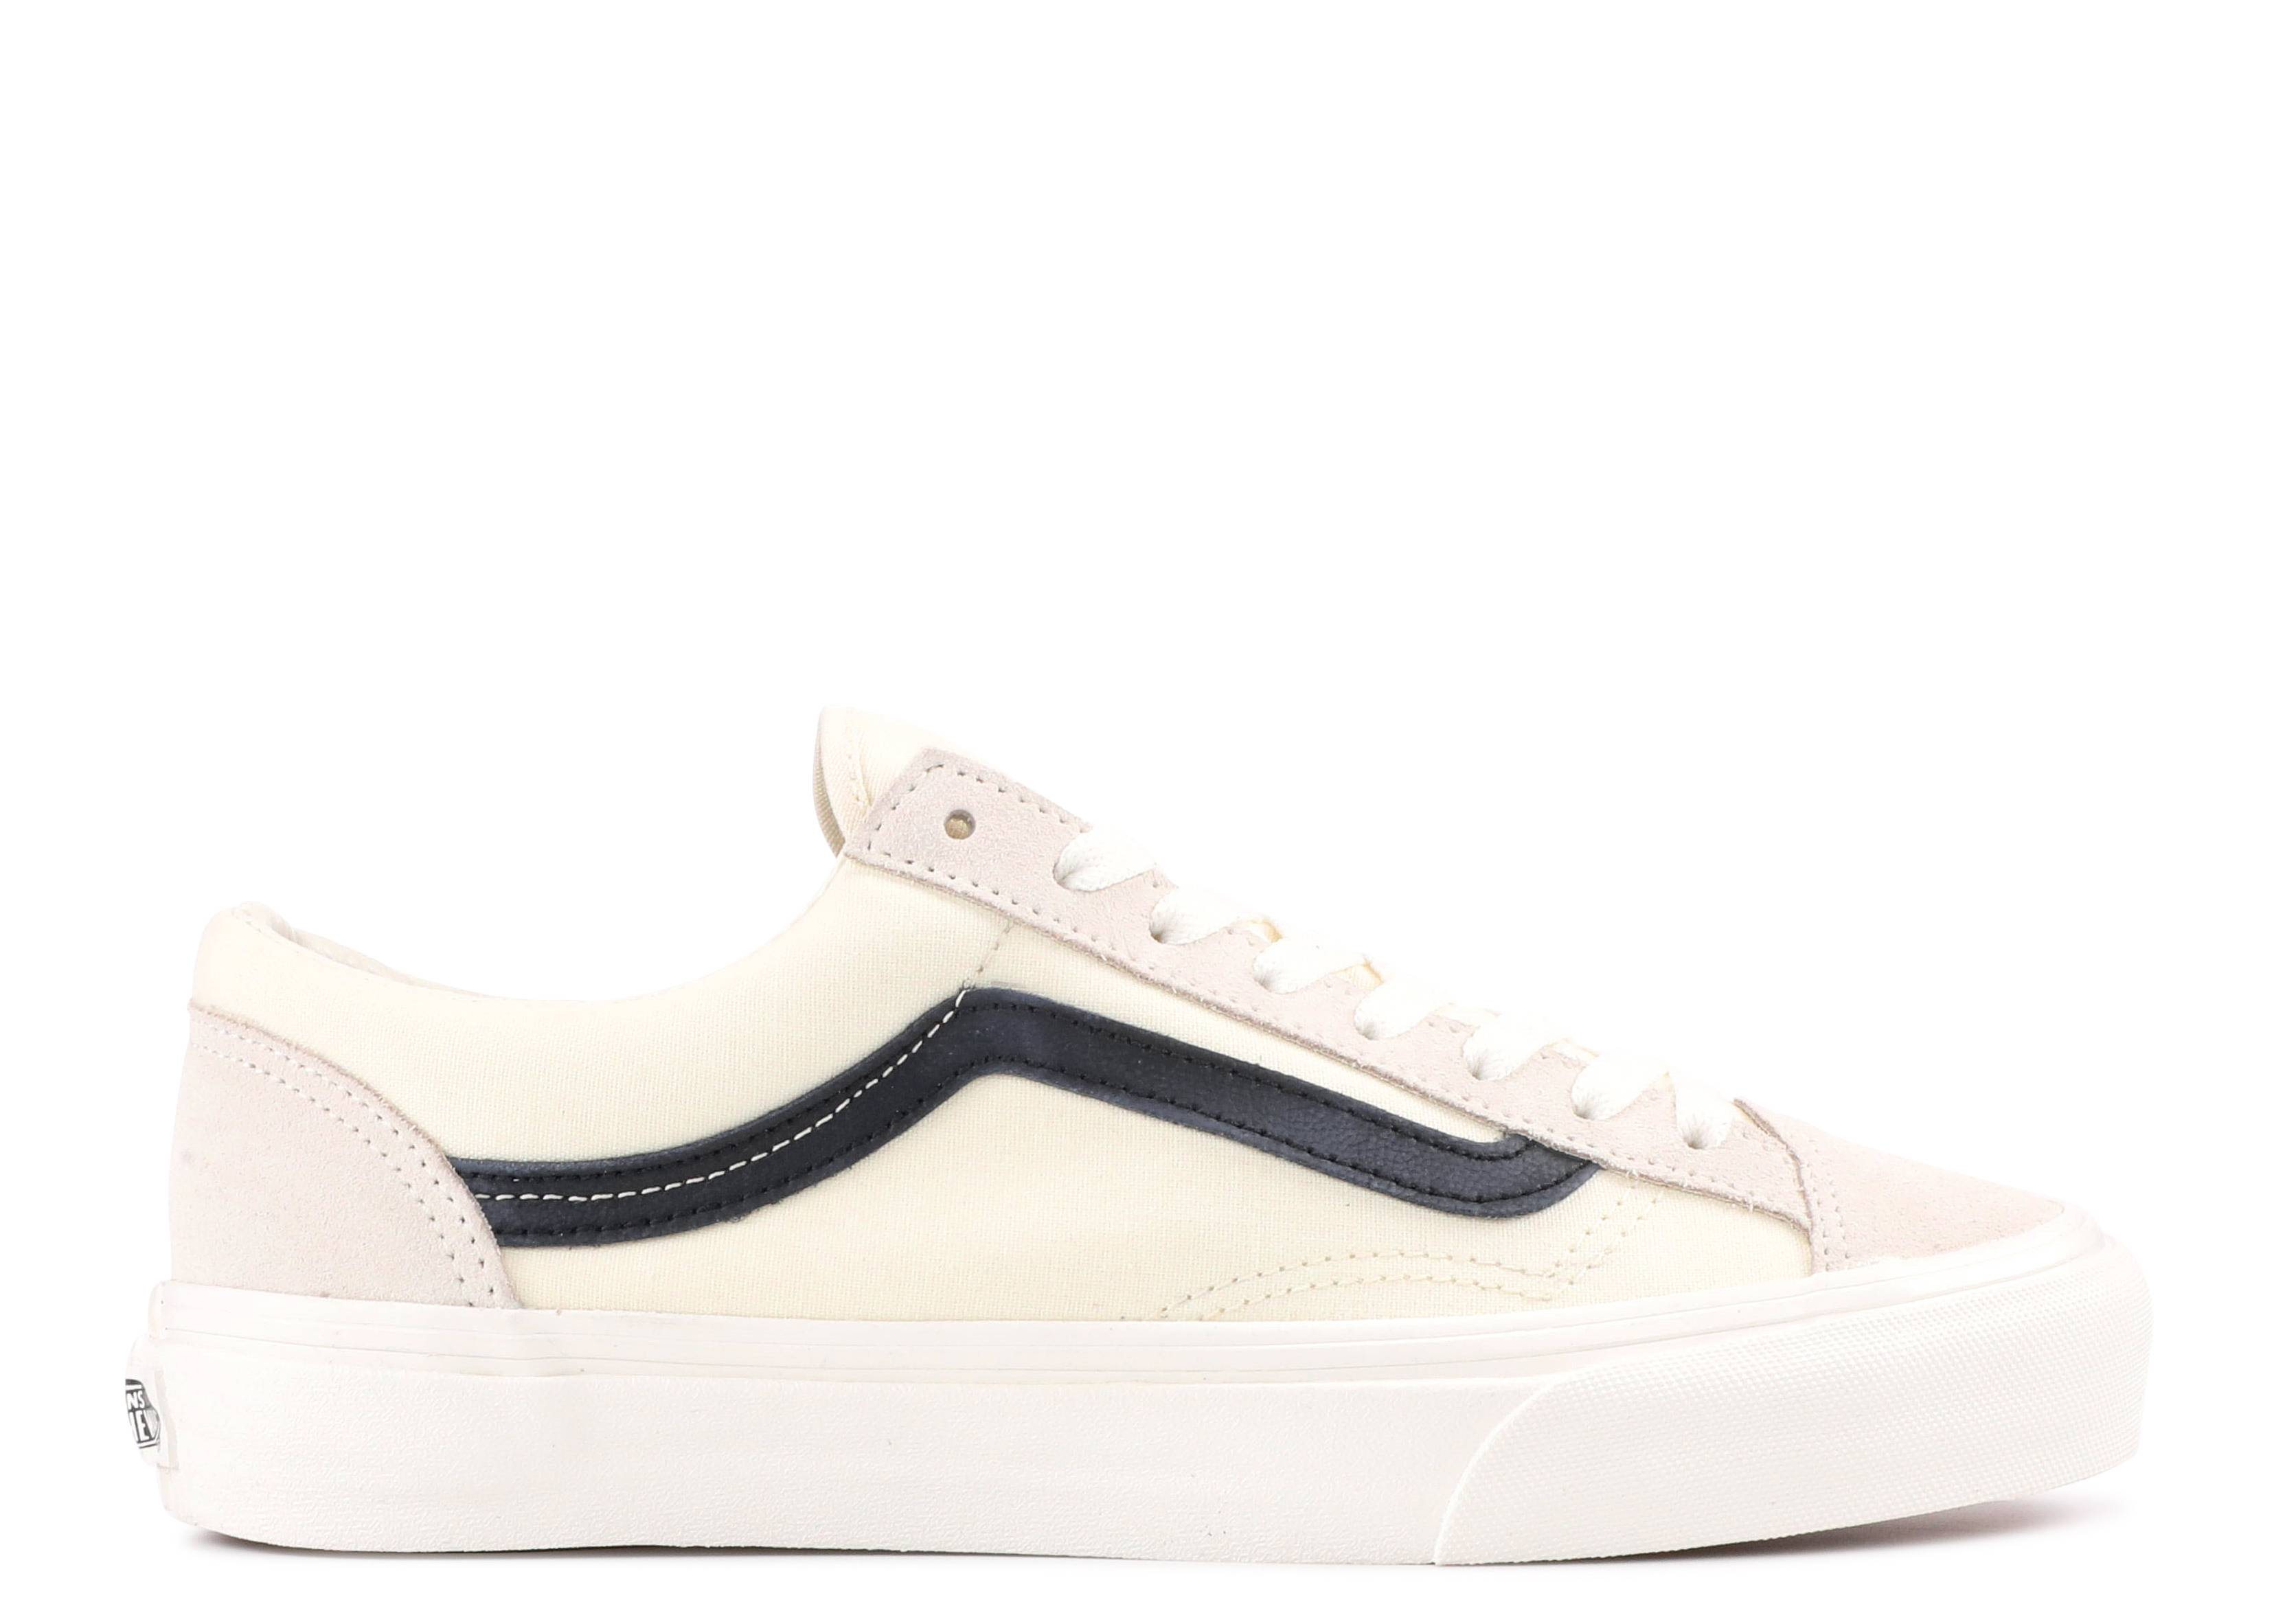 Style 36 (Suede)